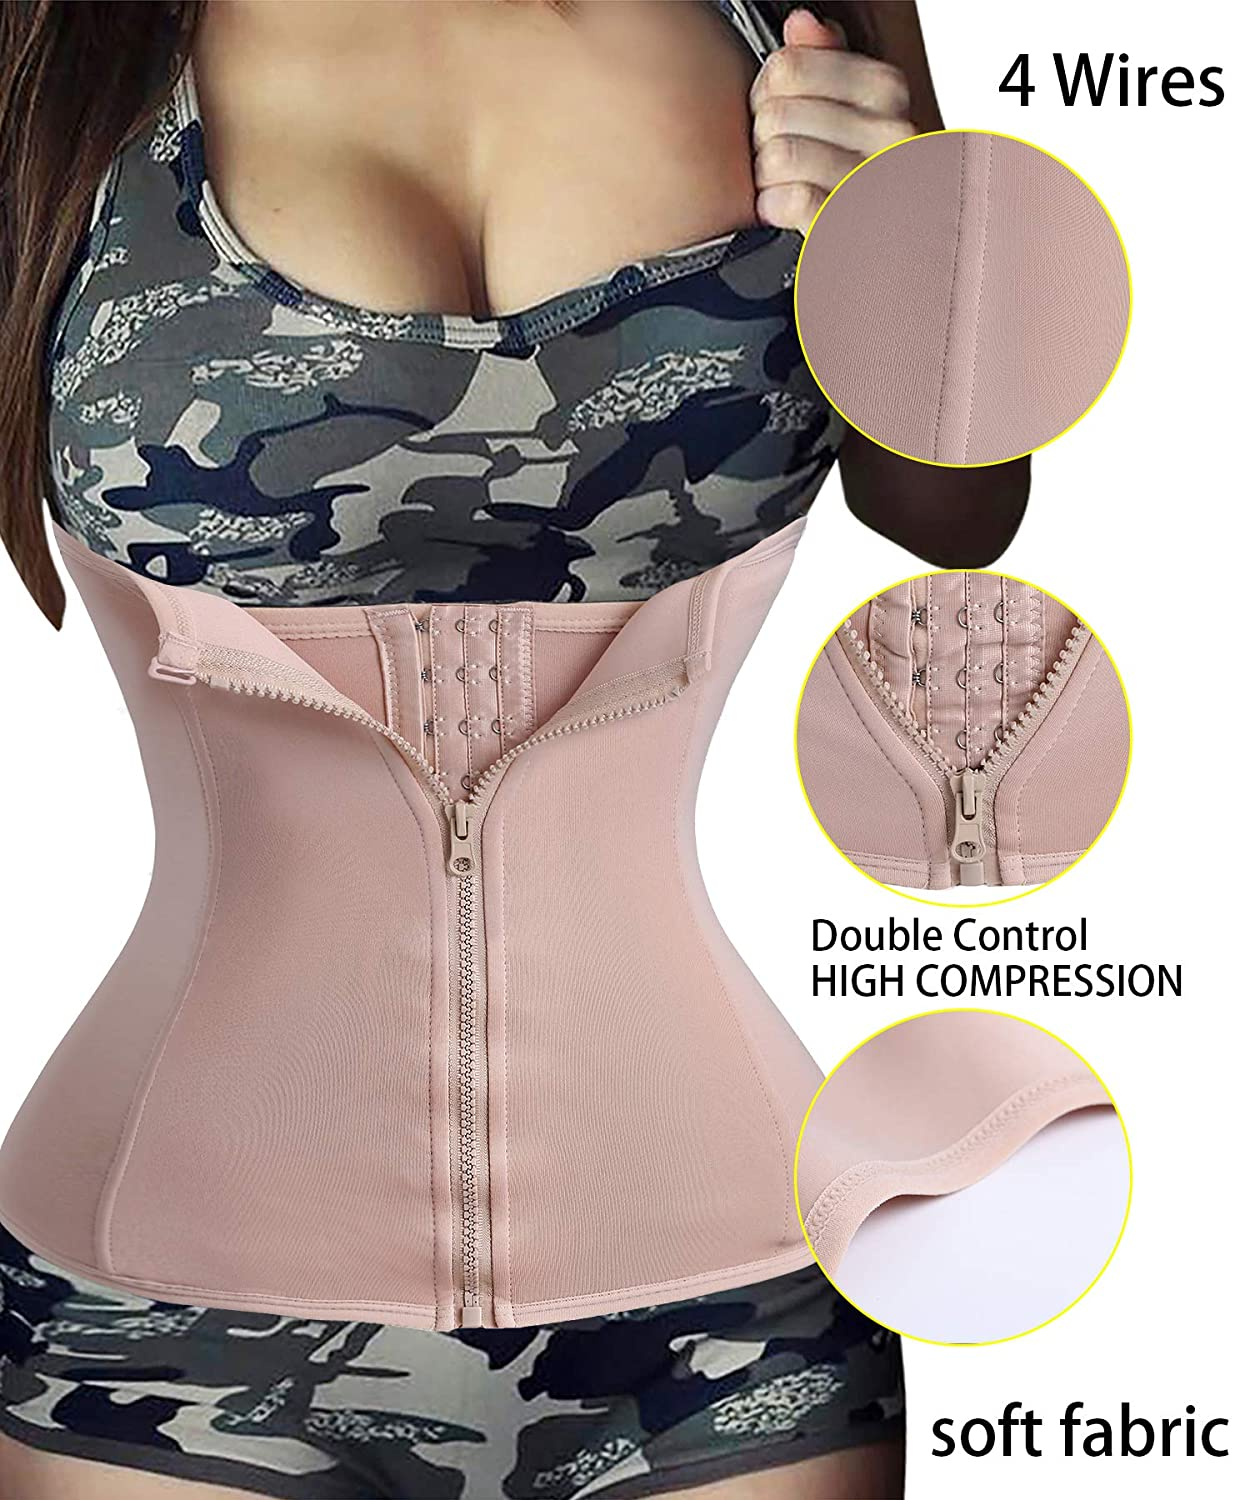 c3e421ccc25 Ursexyly Double Control Waist Trainer Corset Body Shaper Tummy Fat Burning  for Hourglass at Amazon Women s Clothing store